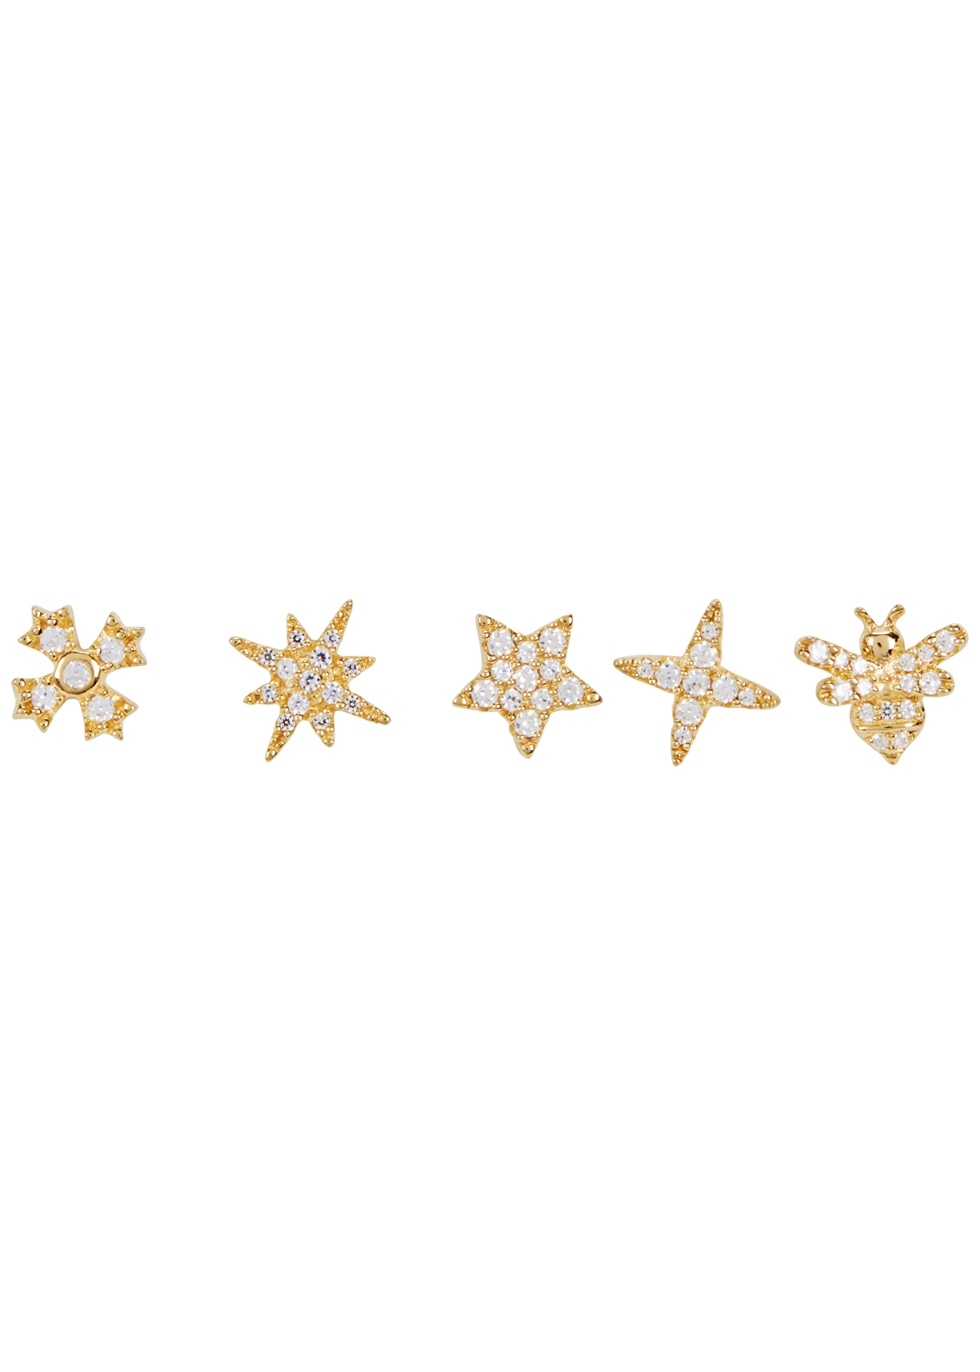 APM MONACO Mismatch Sterling Silver Stud Earrings Set in Gold